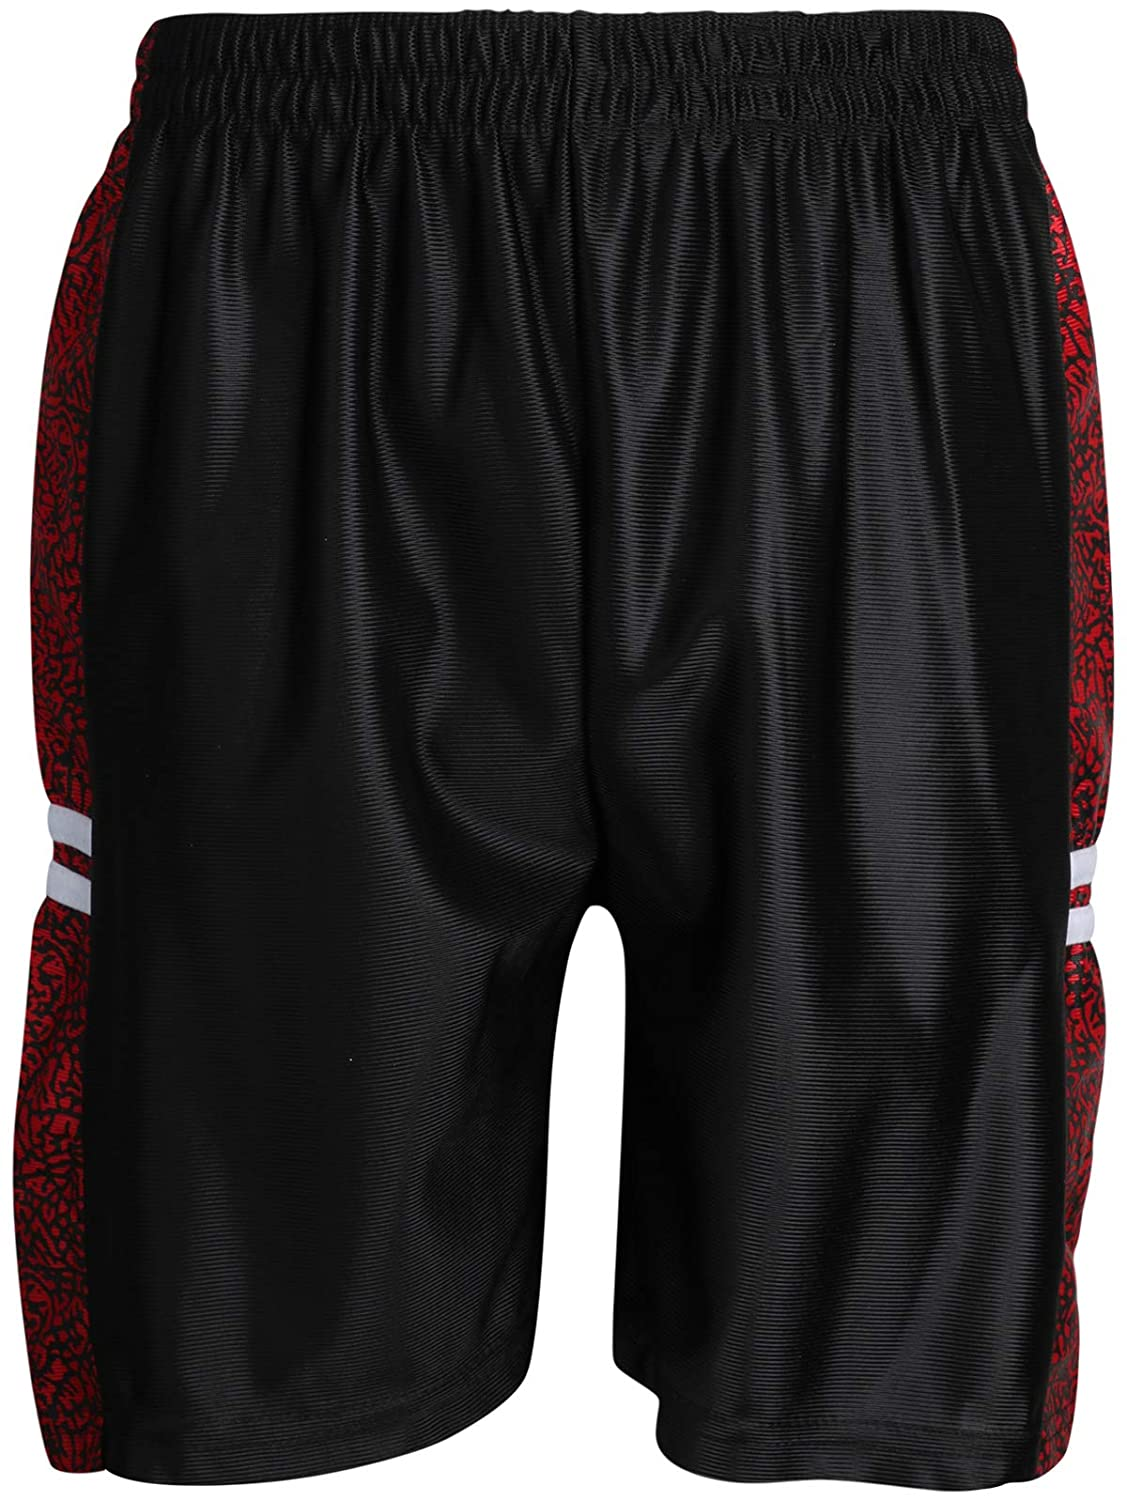 Mad Game Boys/' 2-Piece Basketball Athletic Tank Top and Shorts Set